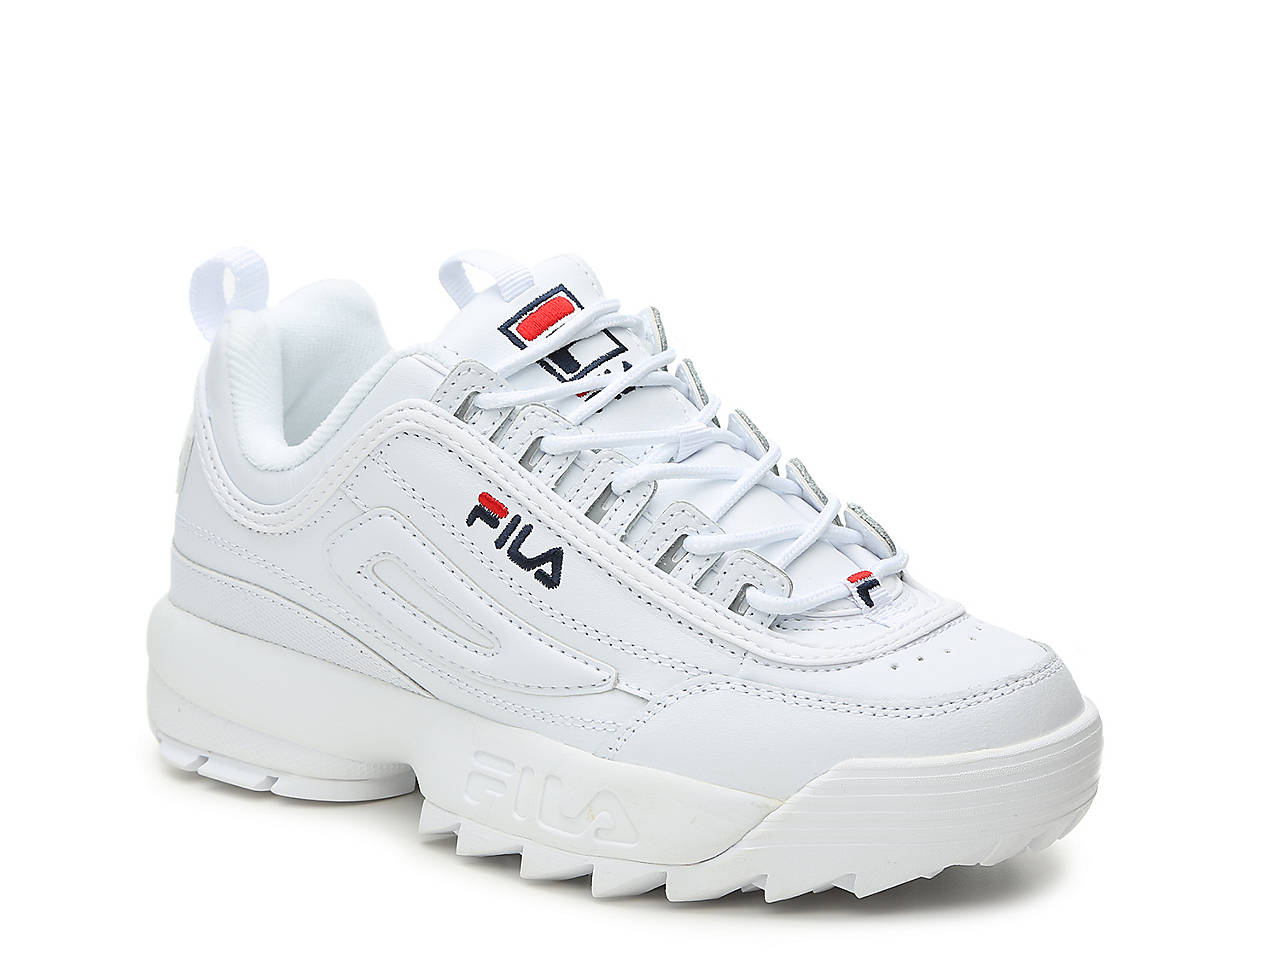 59962cd802a Fila Disruptor II Premium Sneaker - Women's Women's Shoes | DSW